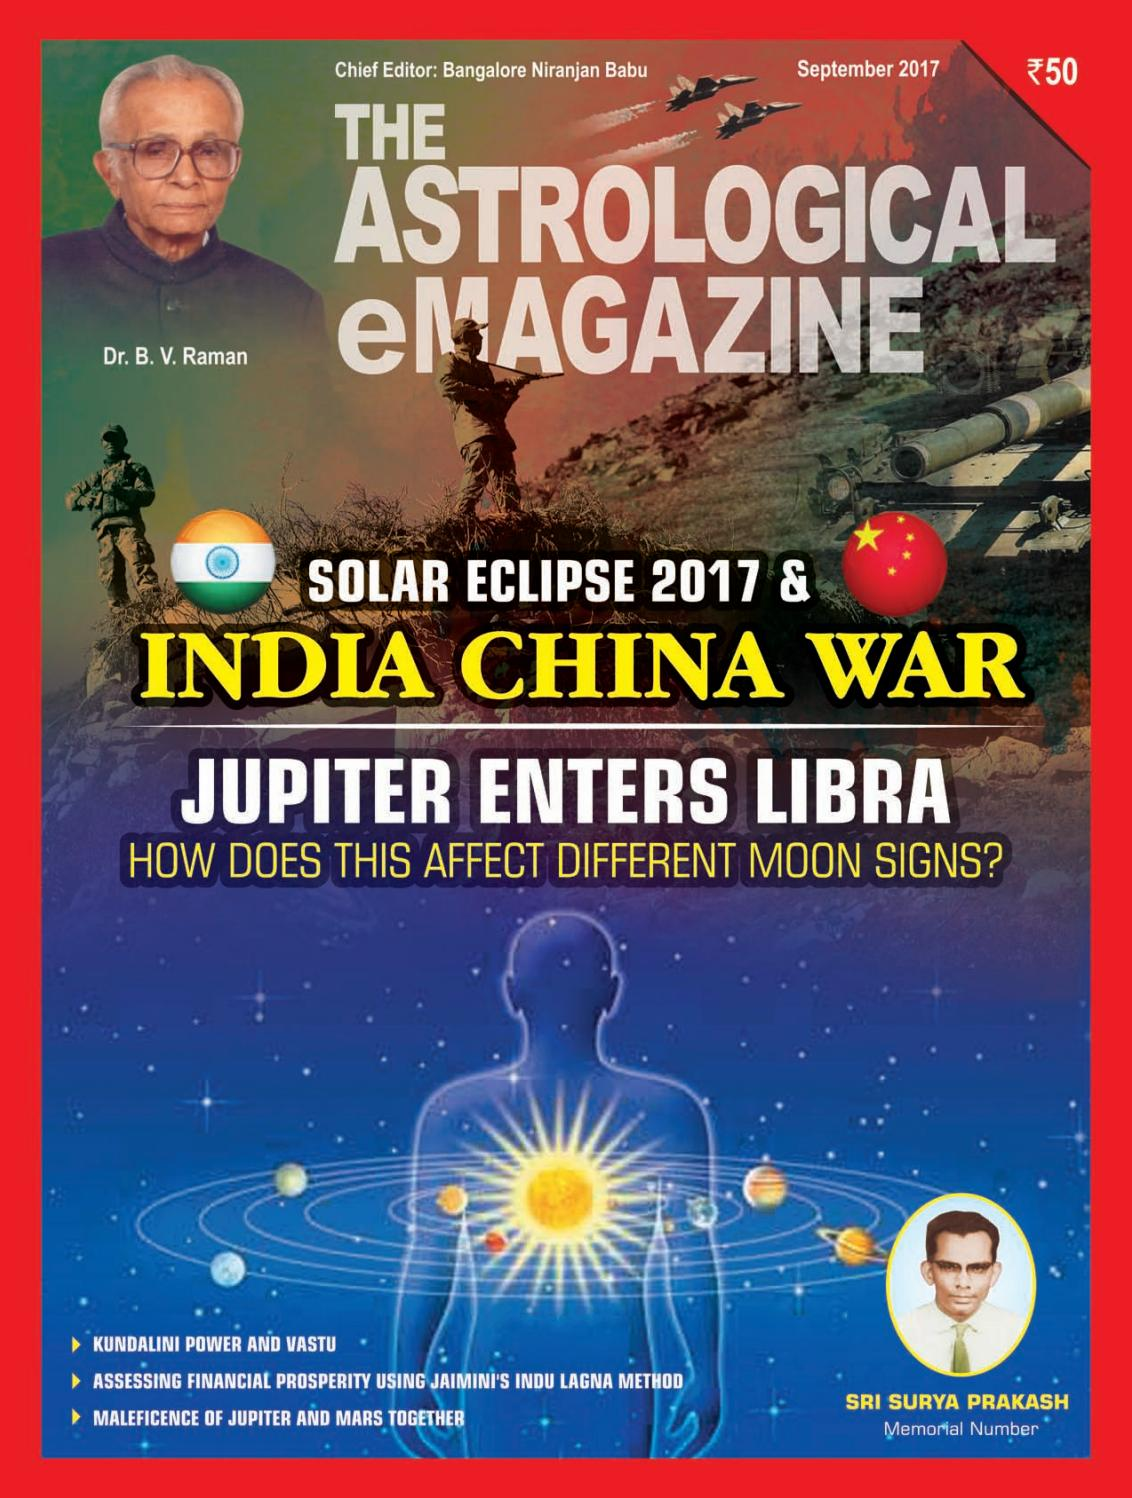 The Astrological eMagazine September 2017 preview by